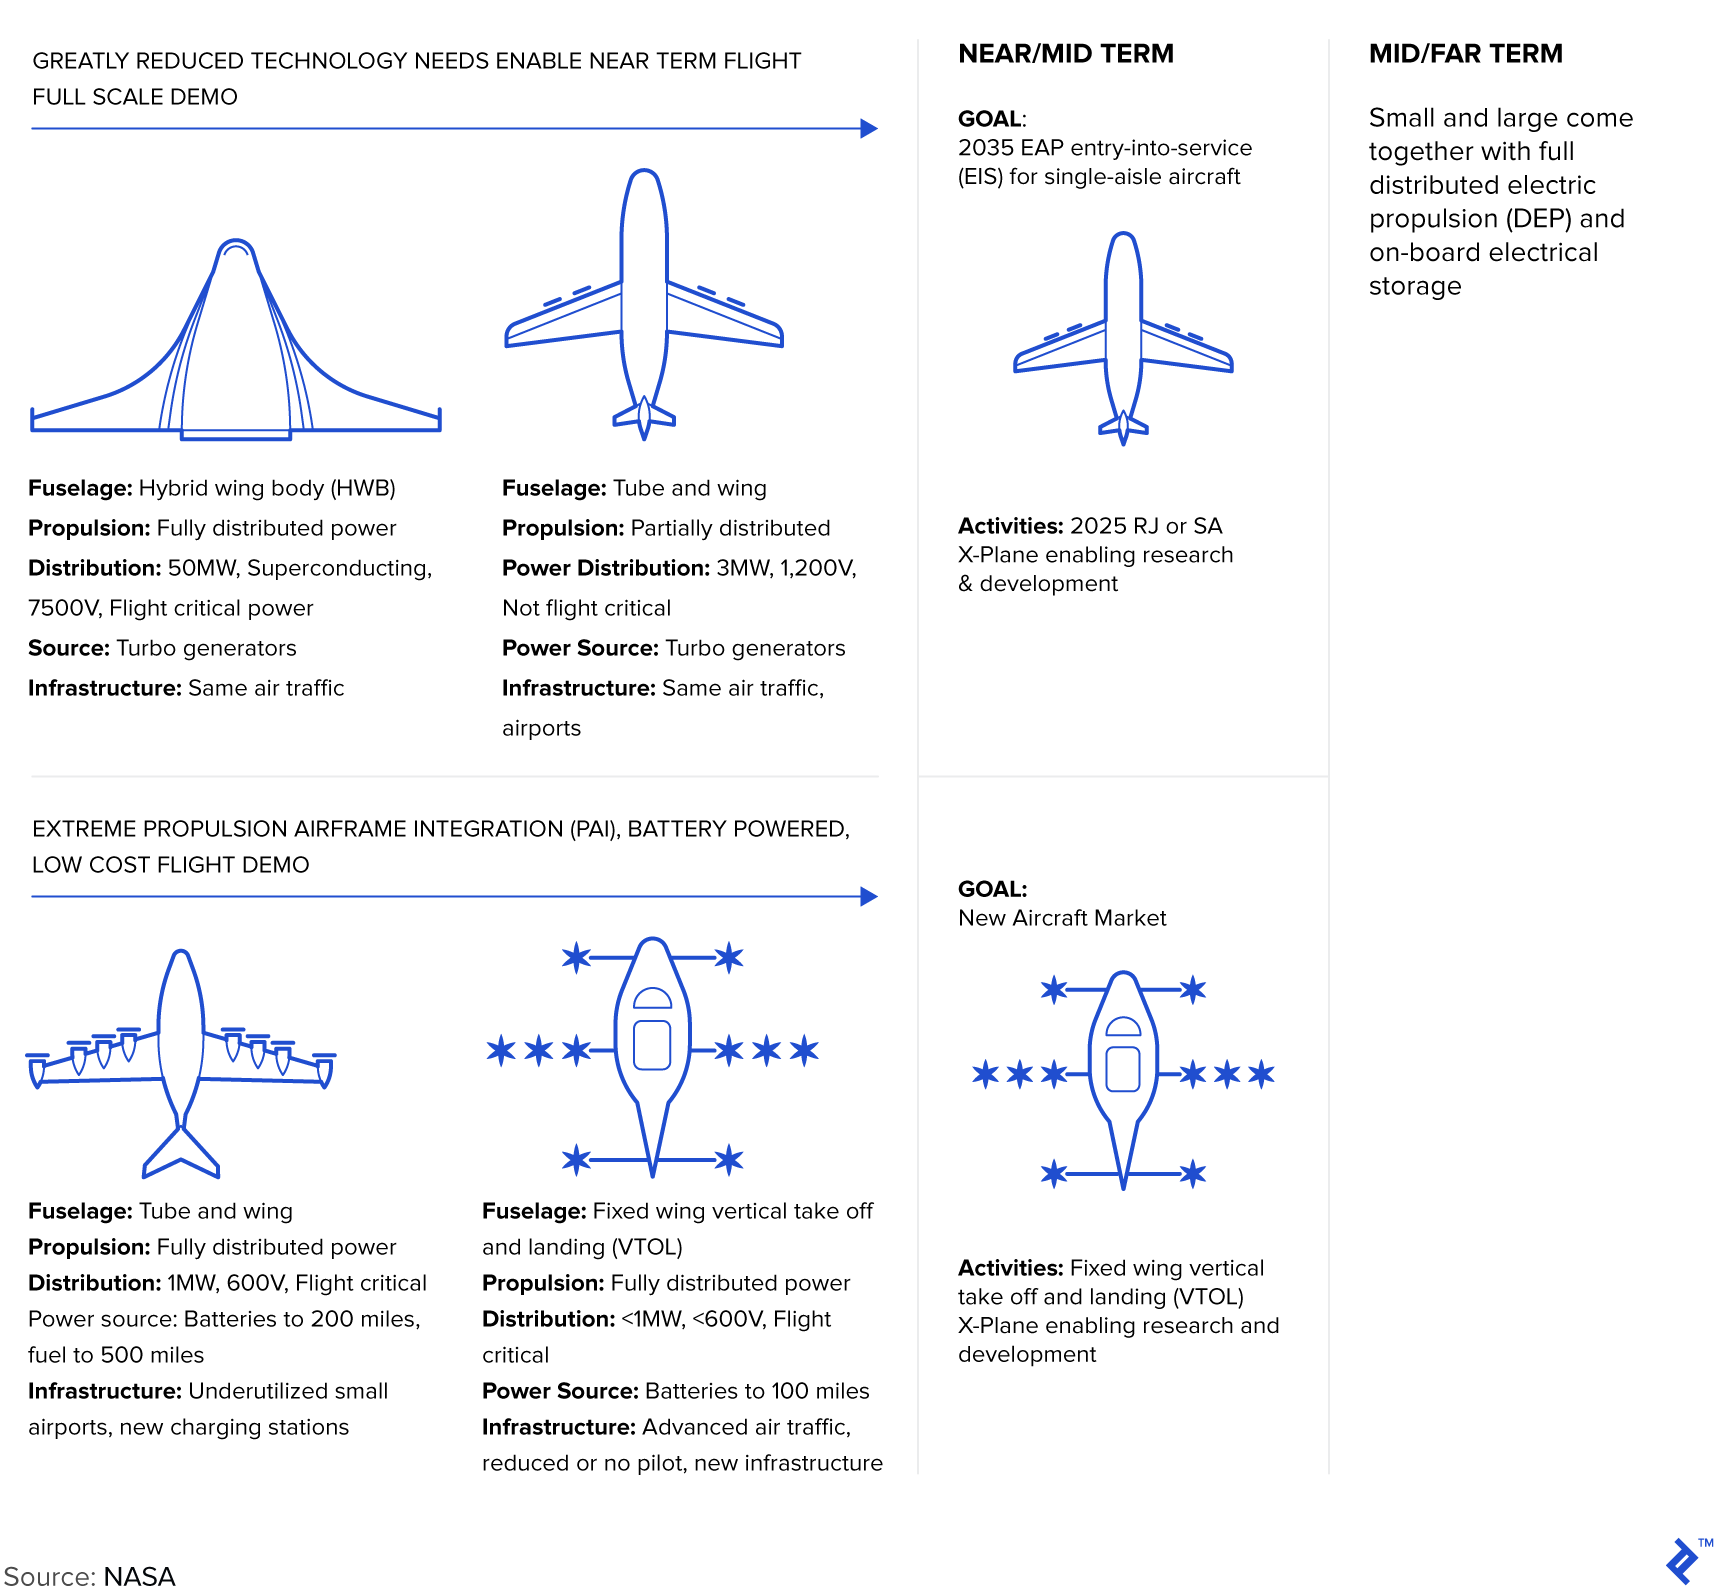 NASA's electrified aircraft propulsion (EAP) plan for larger aircraft.